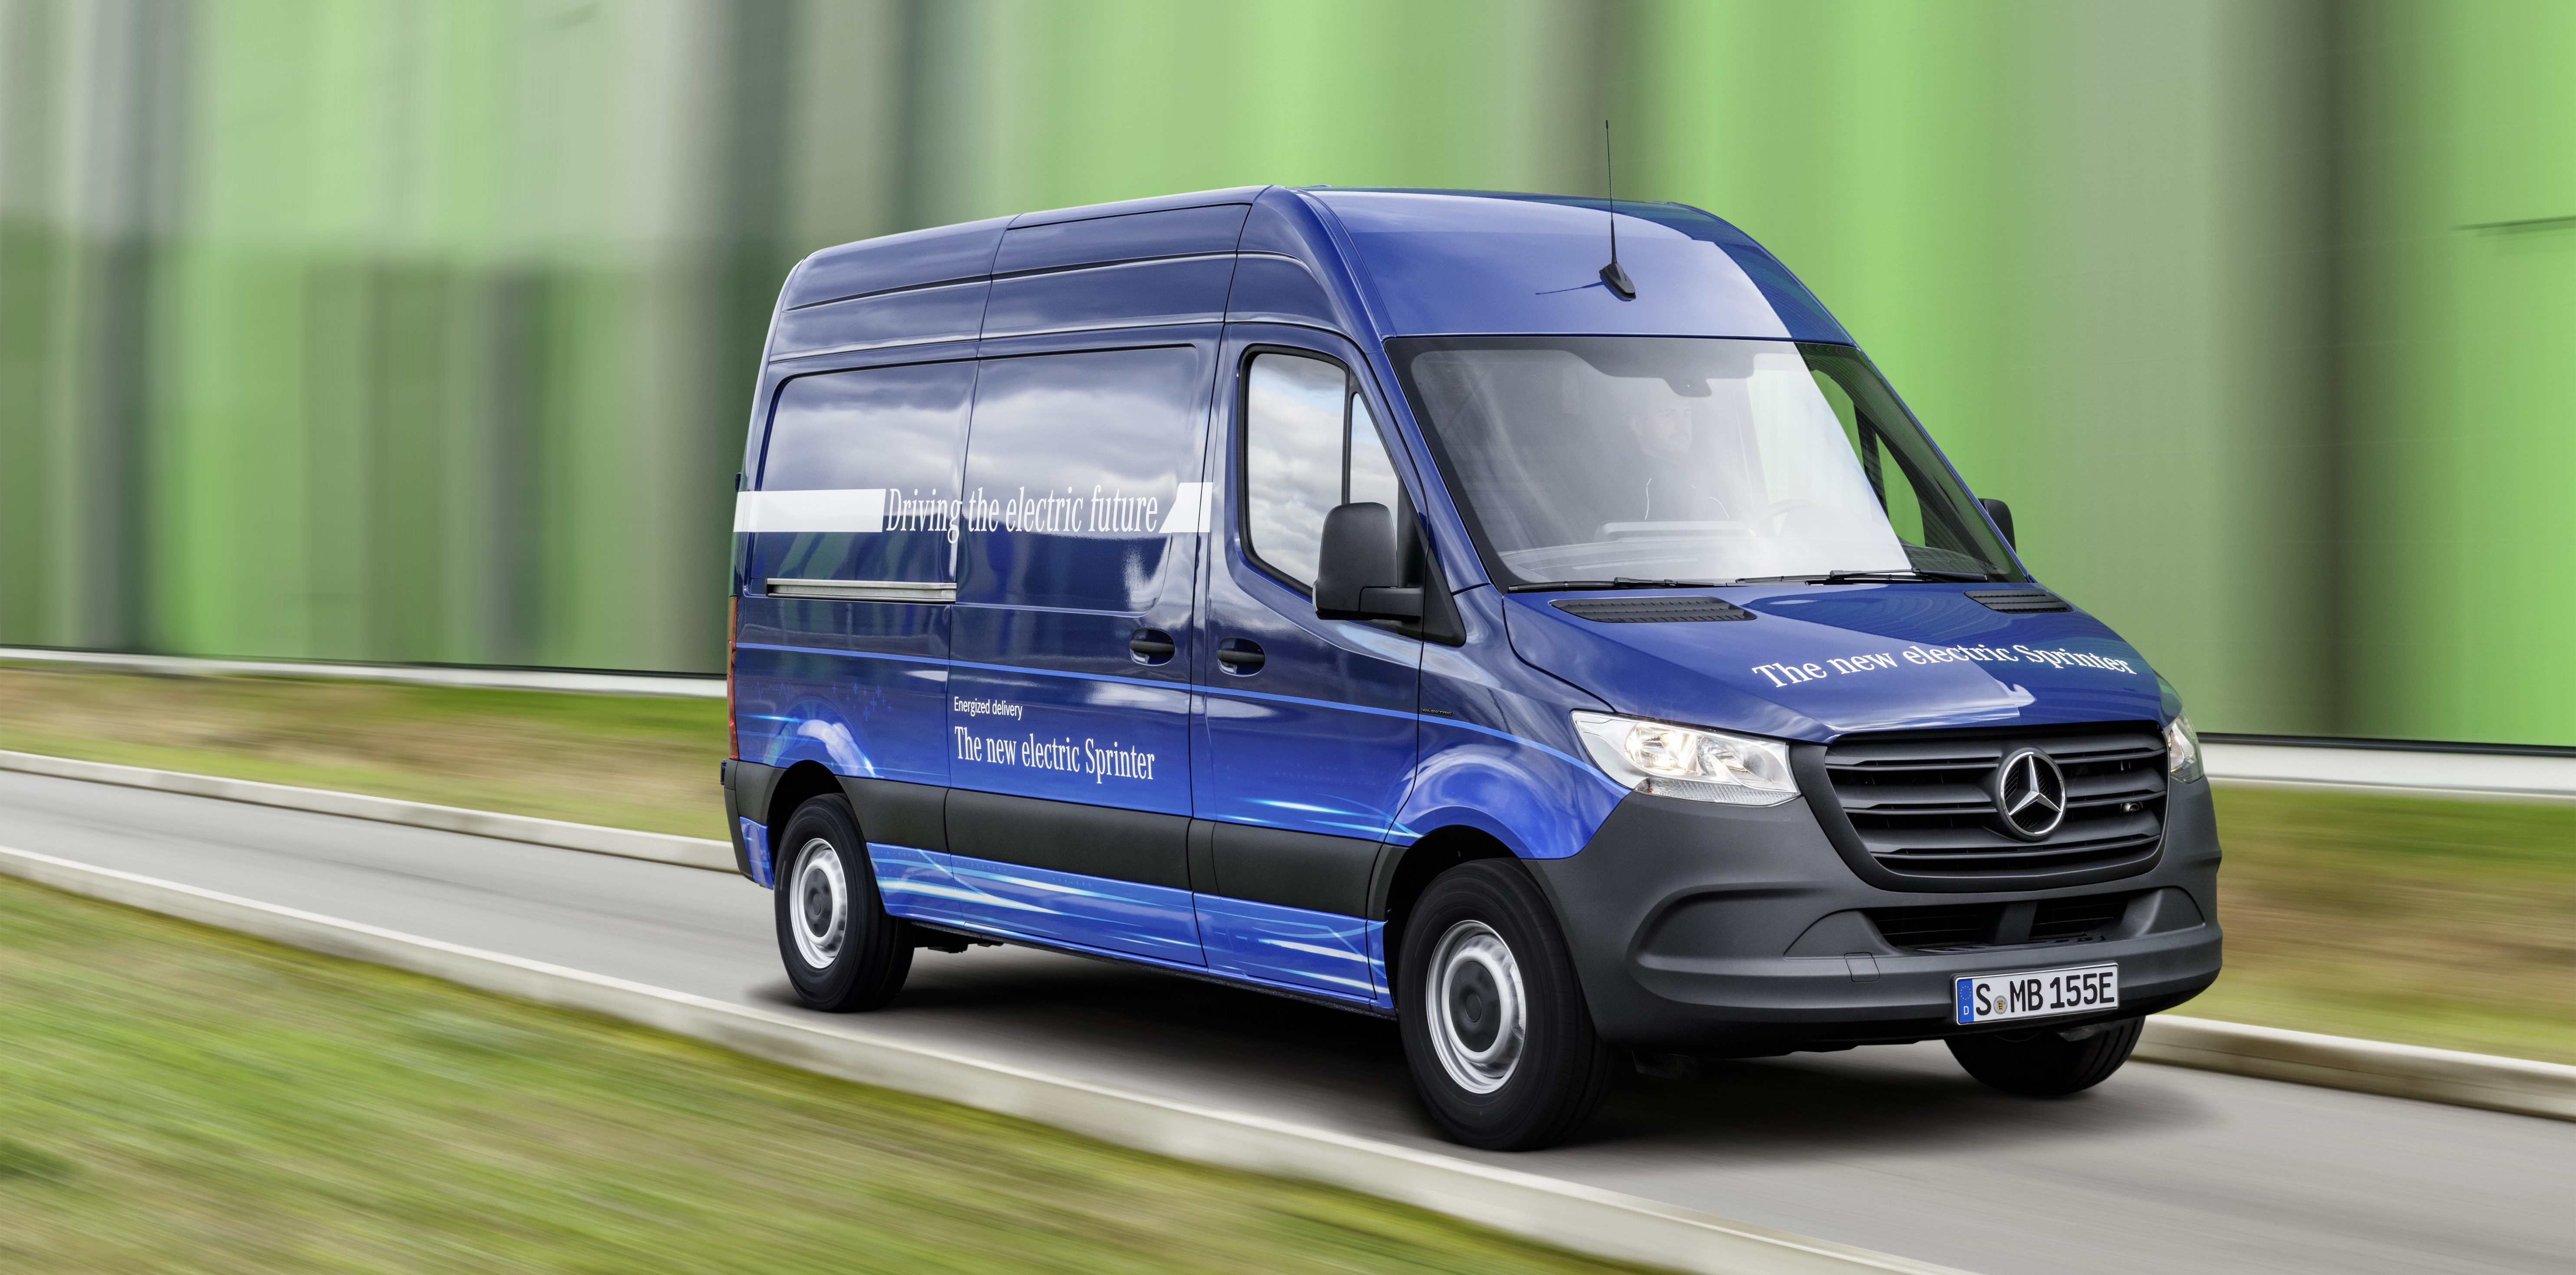 Elon Musk would like Tesla to work with Mercedes-Benz on an electric Sprinter van